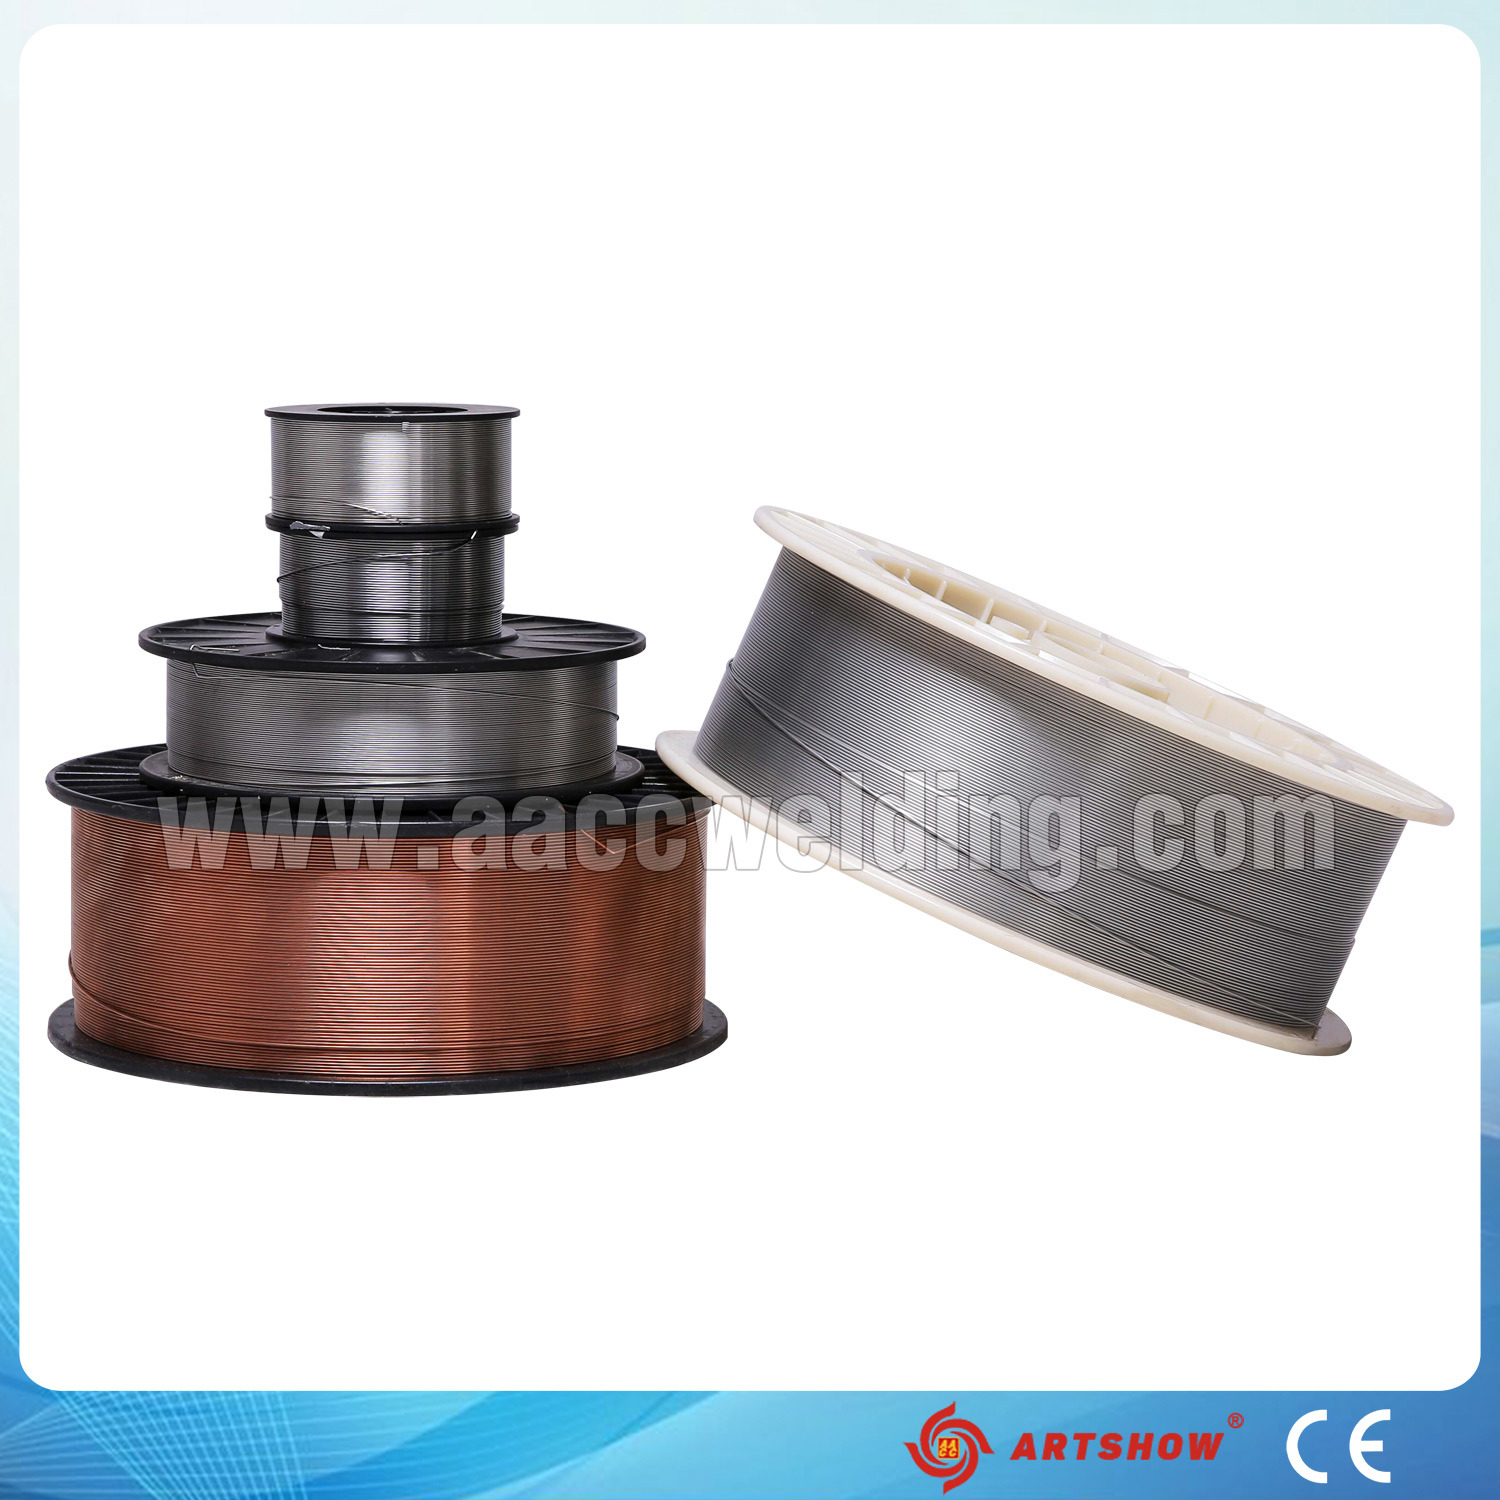 China Flux Cored Wire for Stainless Steel - China Welding Wires ...